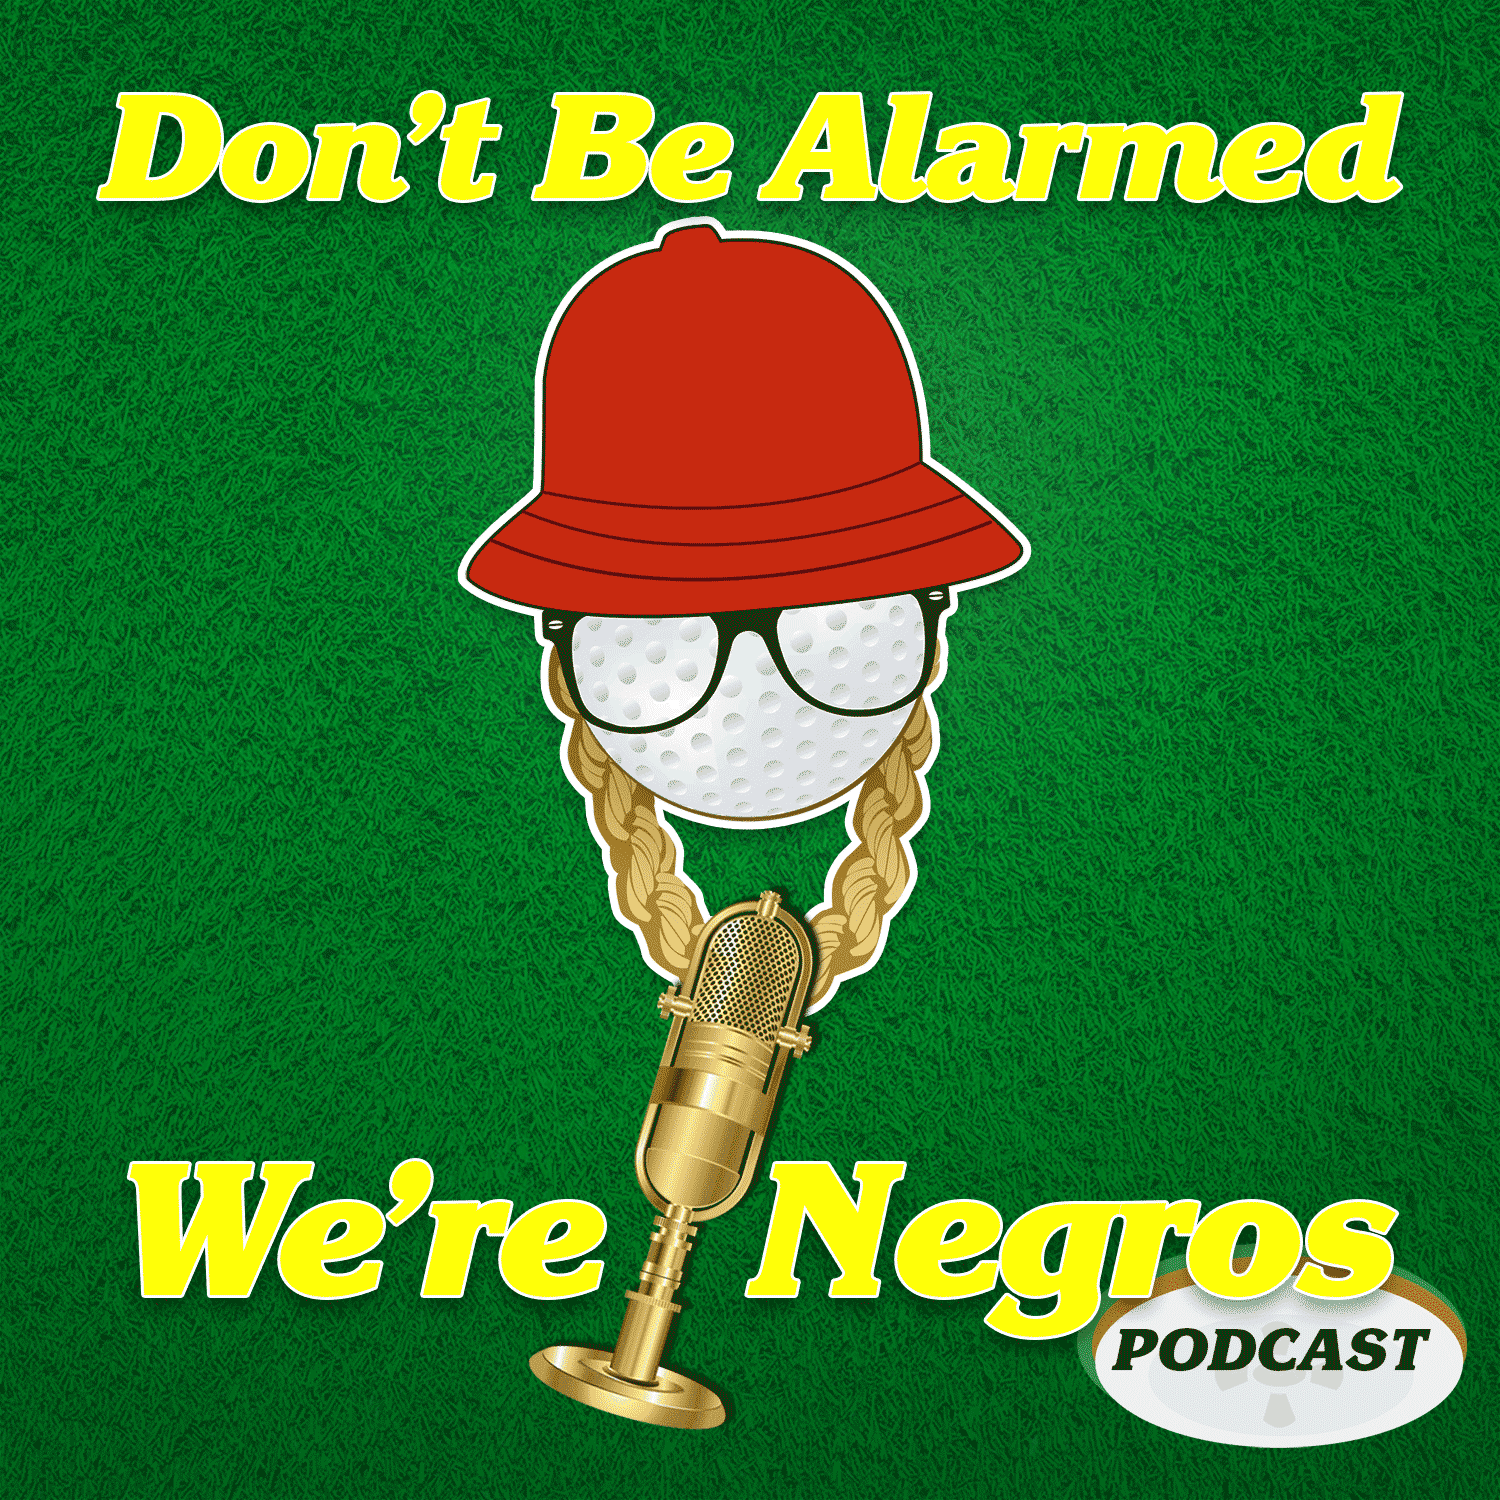 Don't Be Alarmed We're Negros Podcast